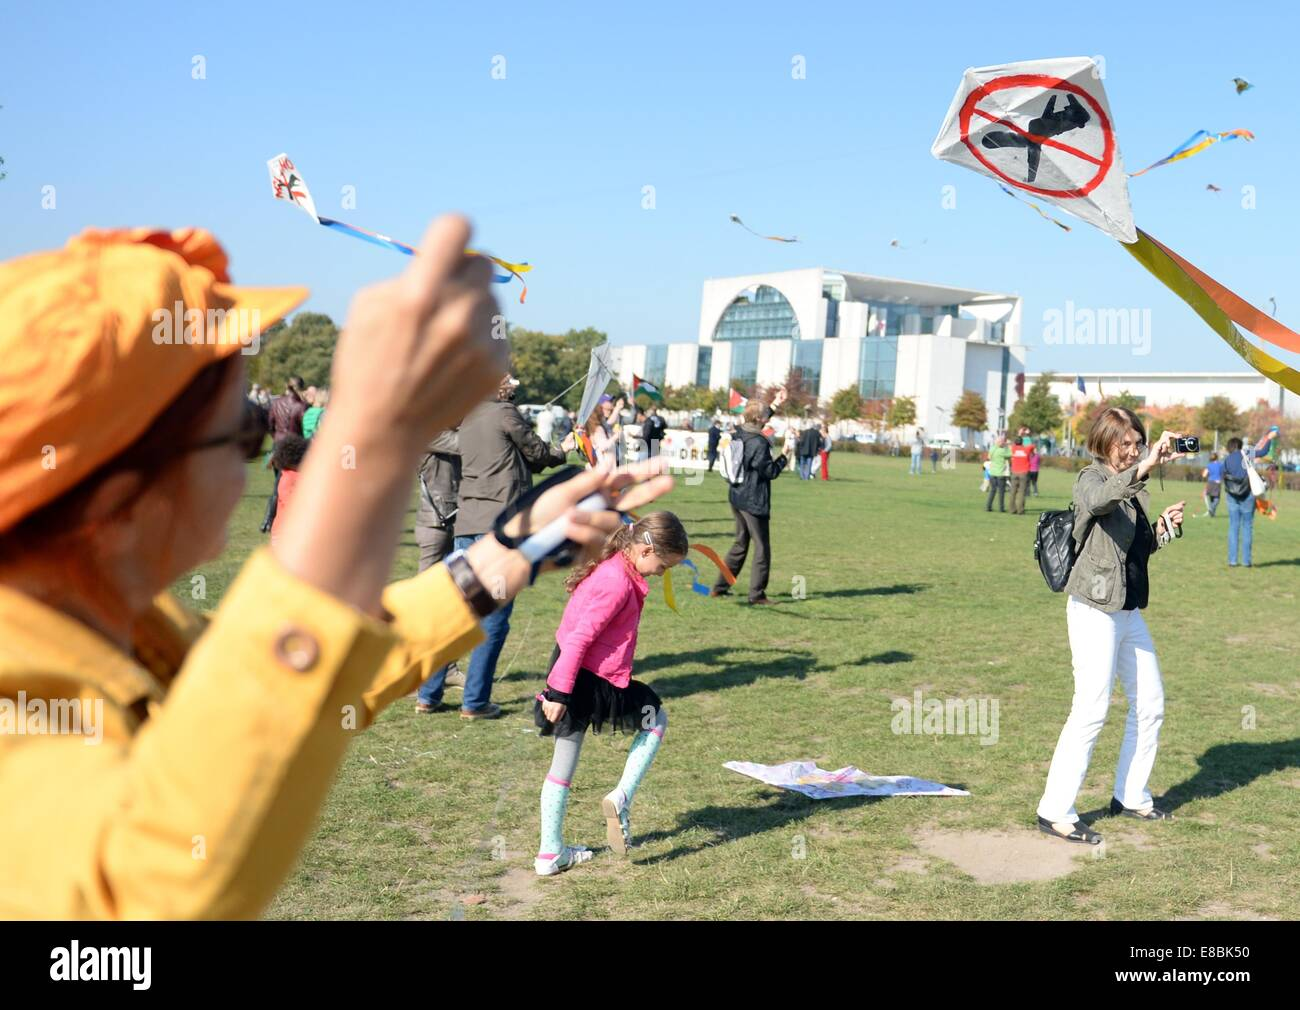 Demonstrators fly kites outside of the Reichstag in Berlin,Germany, 03 October 2014. During the campaint on international Stock Photo